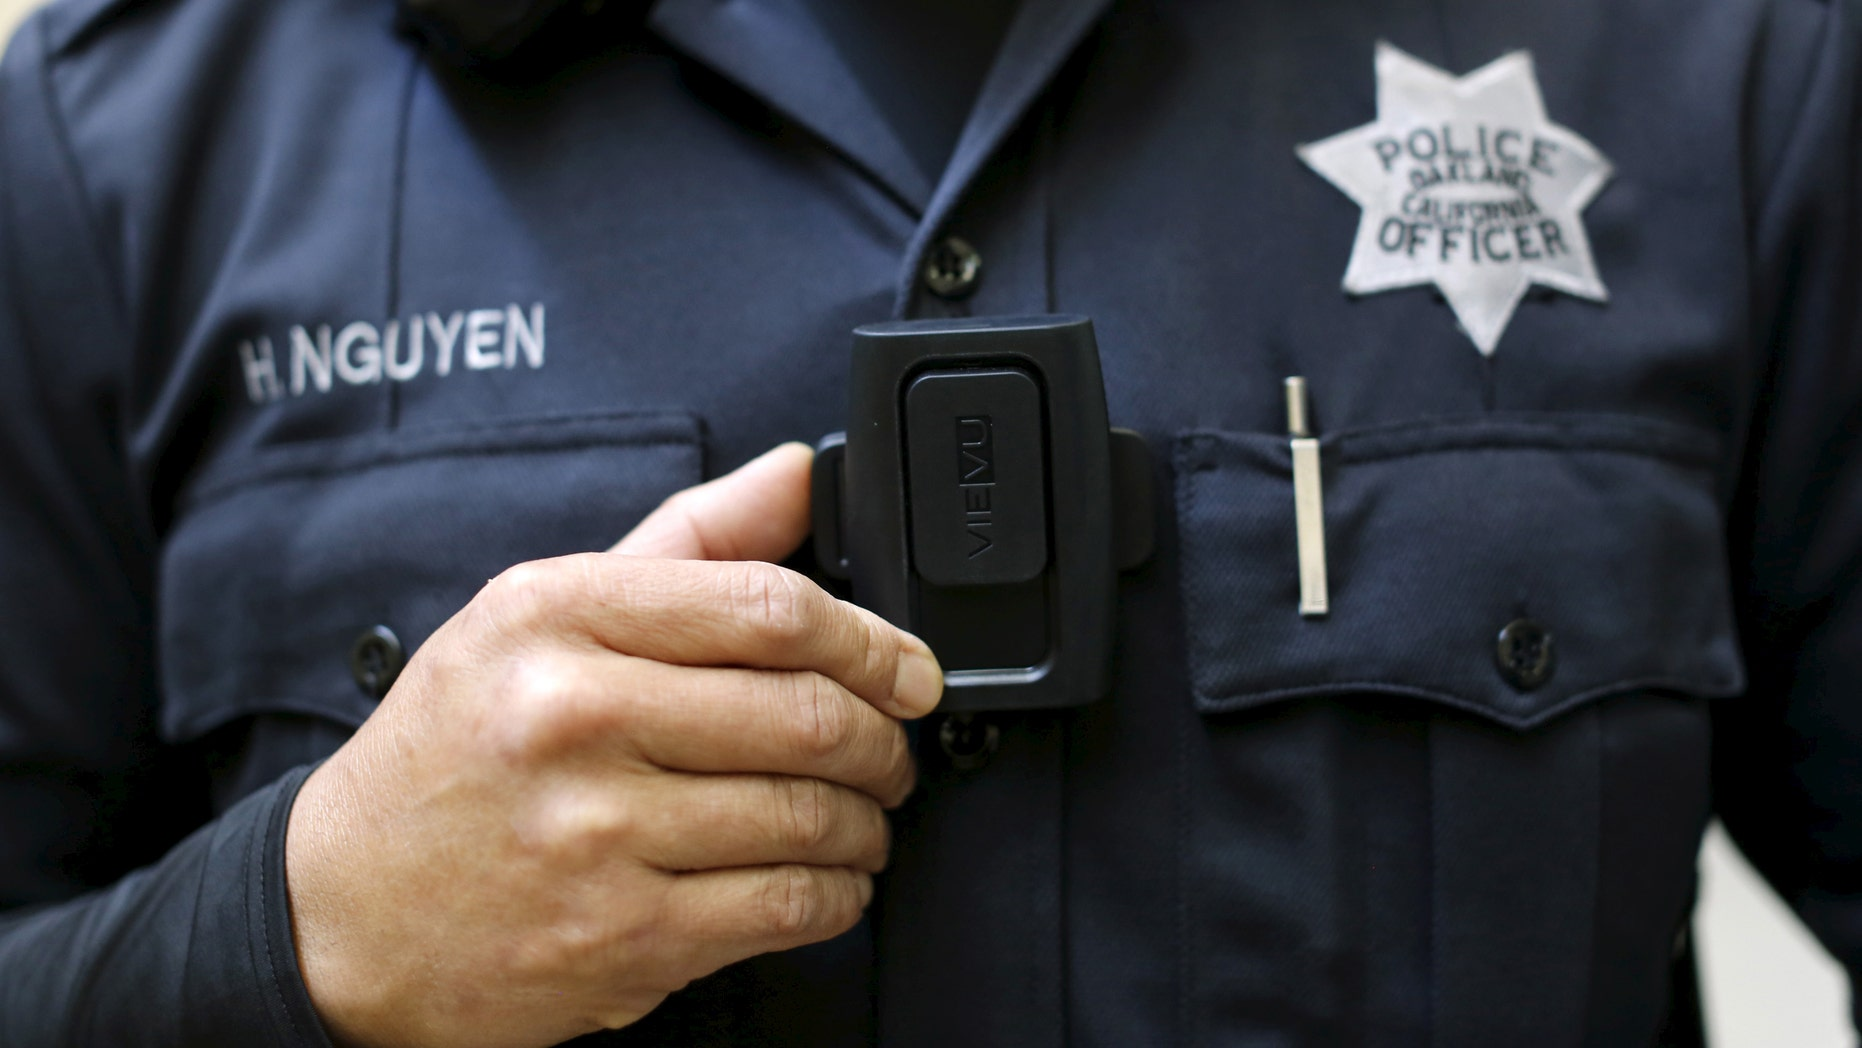 File photo - Oakland Police Department officer Huy Nguyen mounts a Portable Digital Recording Device, a body camera designed to record both audio and video in the field, at the police headquarters in Oakland, California April 14, 2015. (REUTERS/Robert Galbraith)